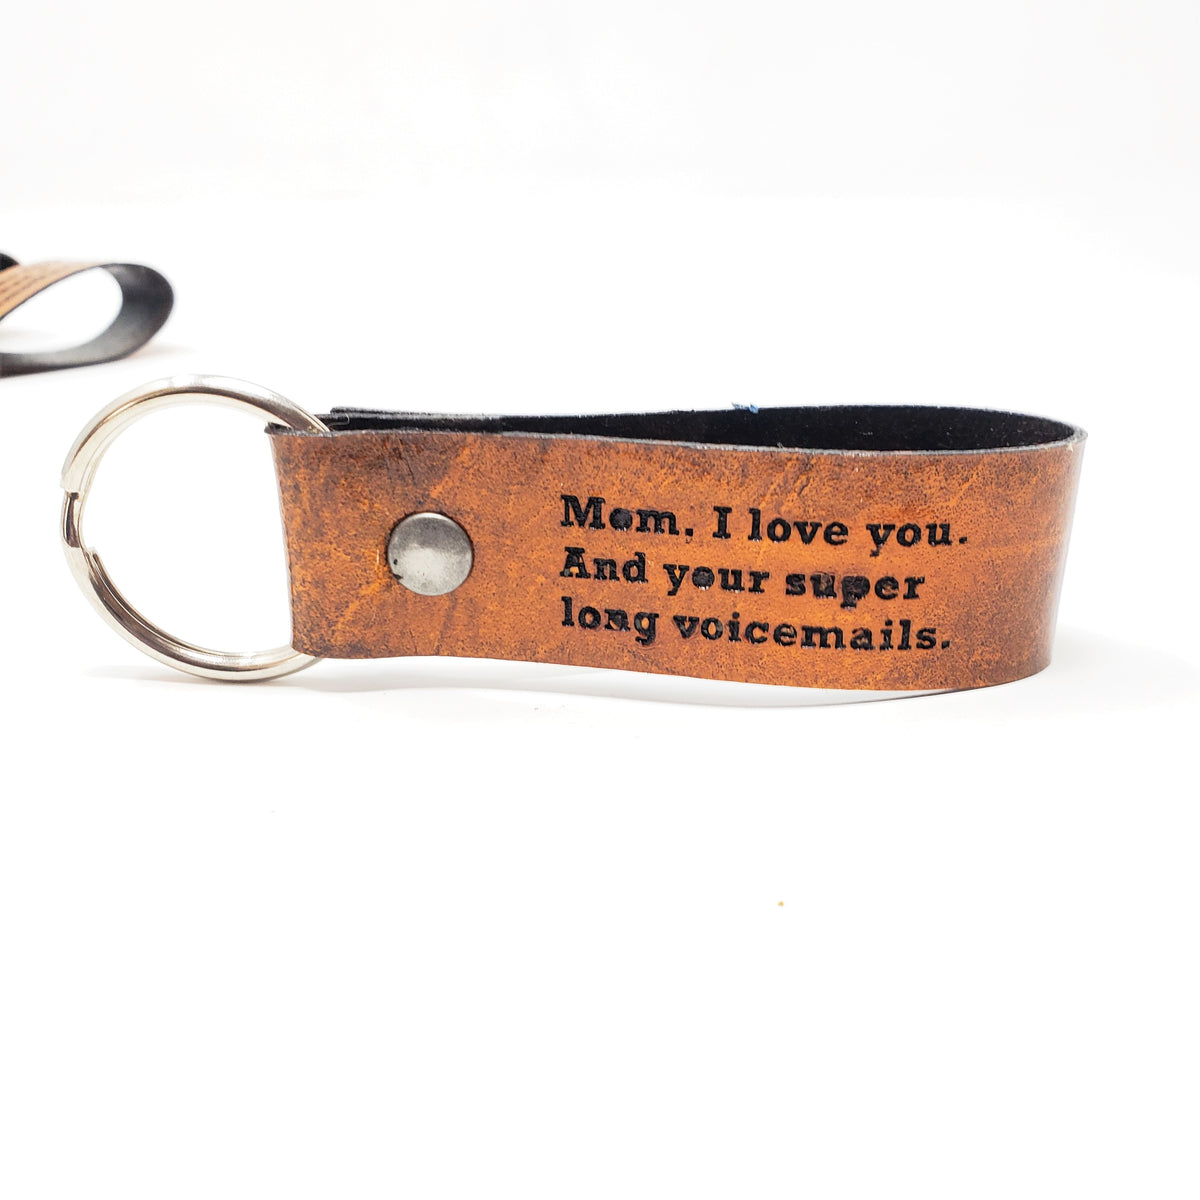 Engraved Leather Keychain - Mom, I Love You. And Your Super Long Voicemails.